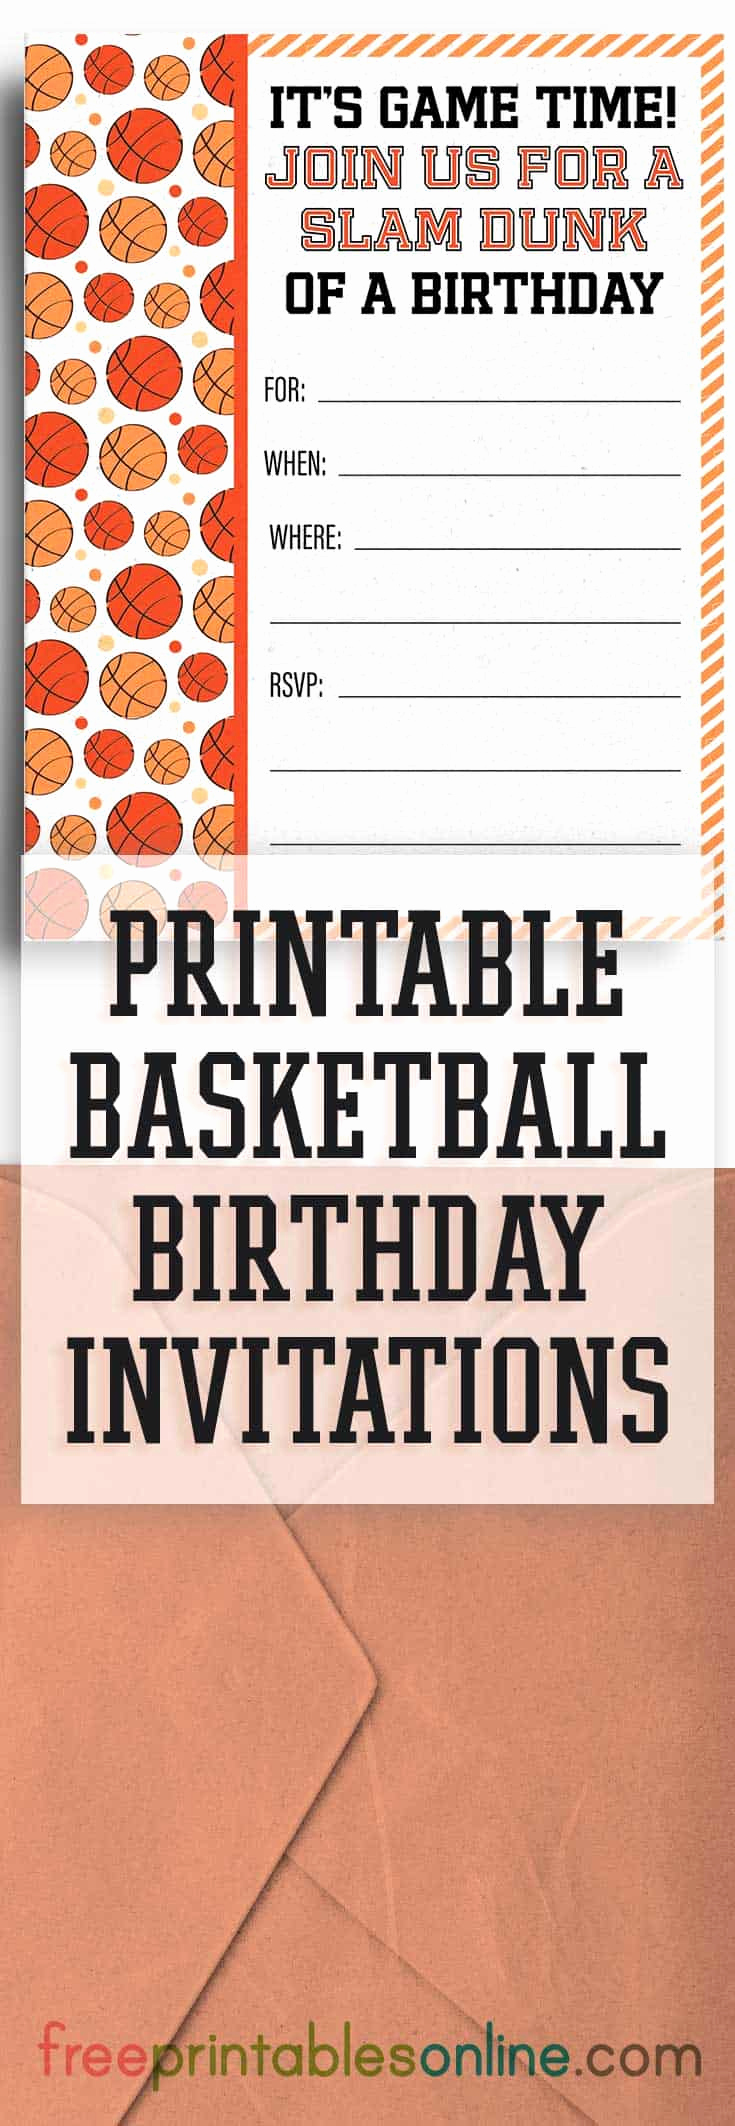 Free Basketball Invitation Templates Beautiful Free Printable Basketball Birthday Party Invitations